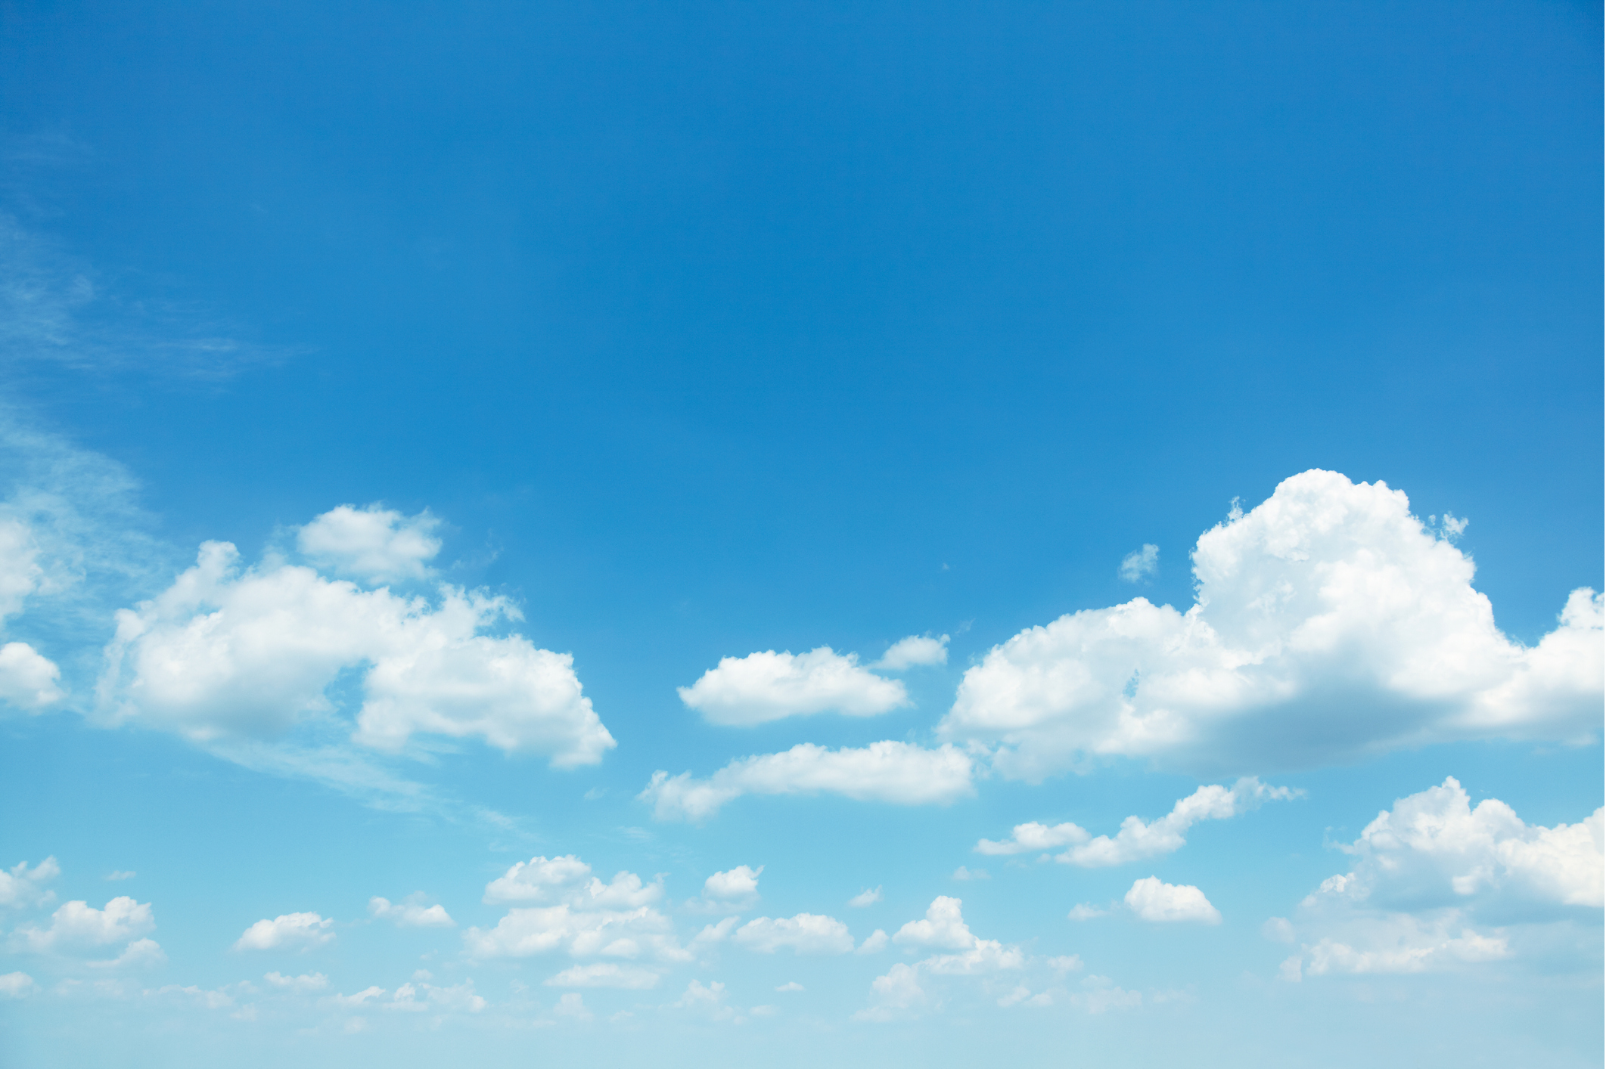 Your Government background image